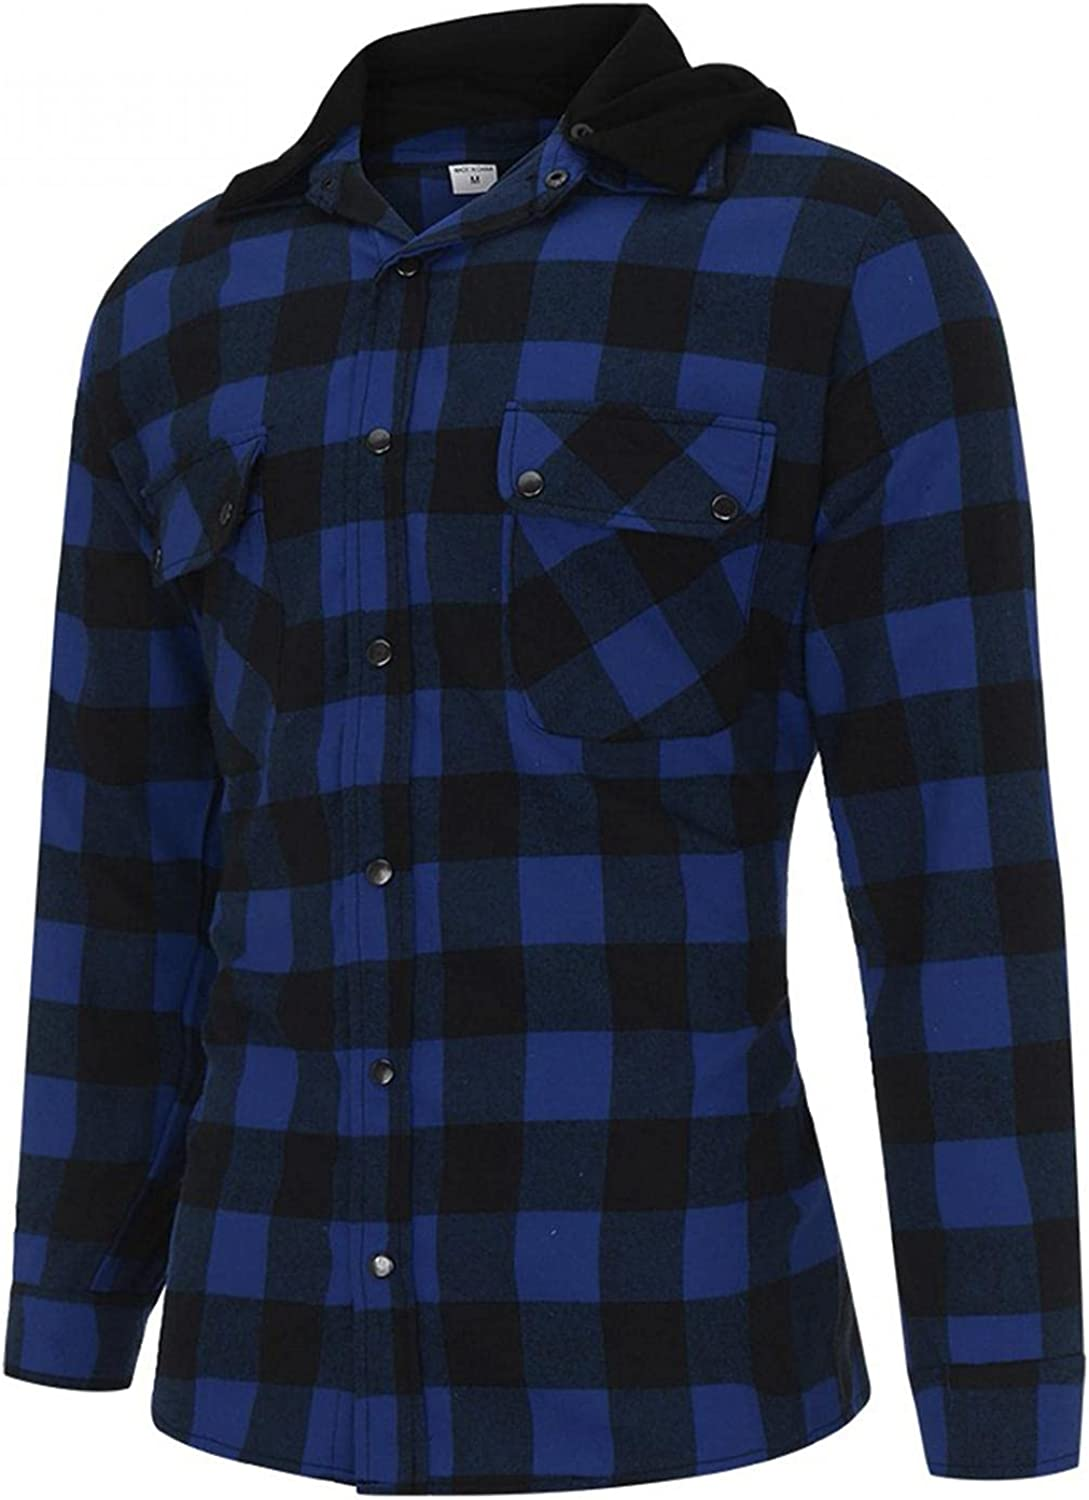 LEIYAN Mens Casual Fleece Hooded Shirts Long Sleeve Slim Fit Flannel Plaid Hoodie Pullover with Pockets